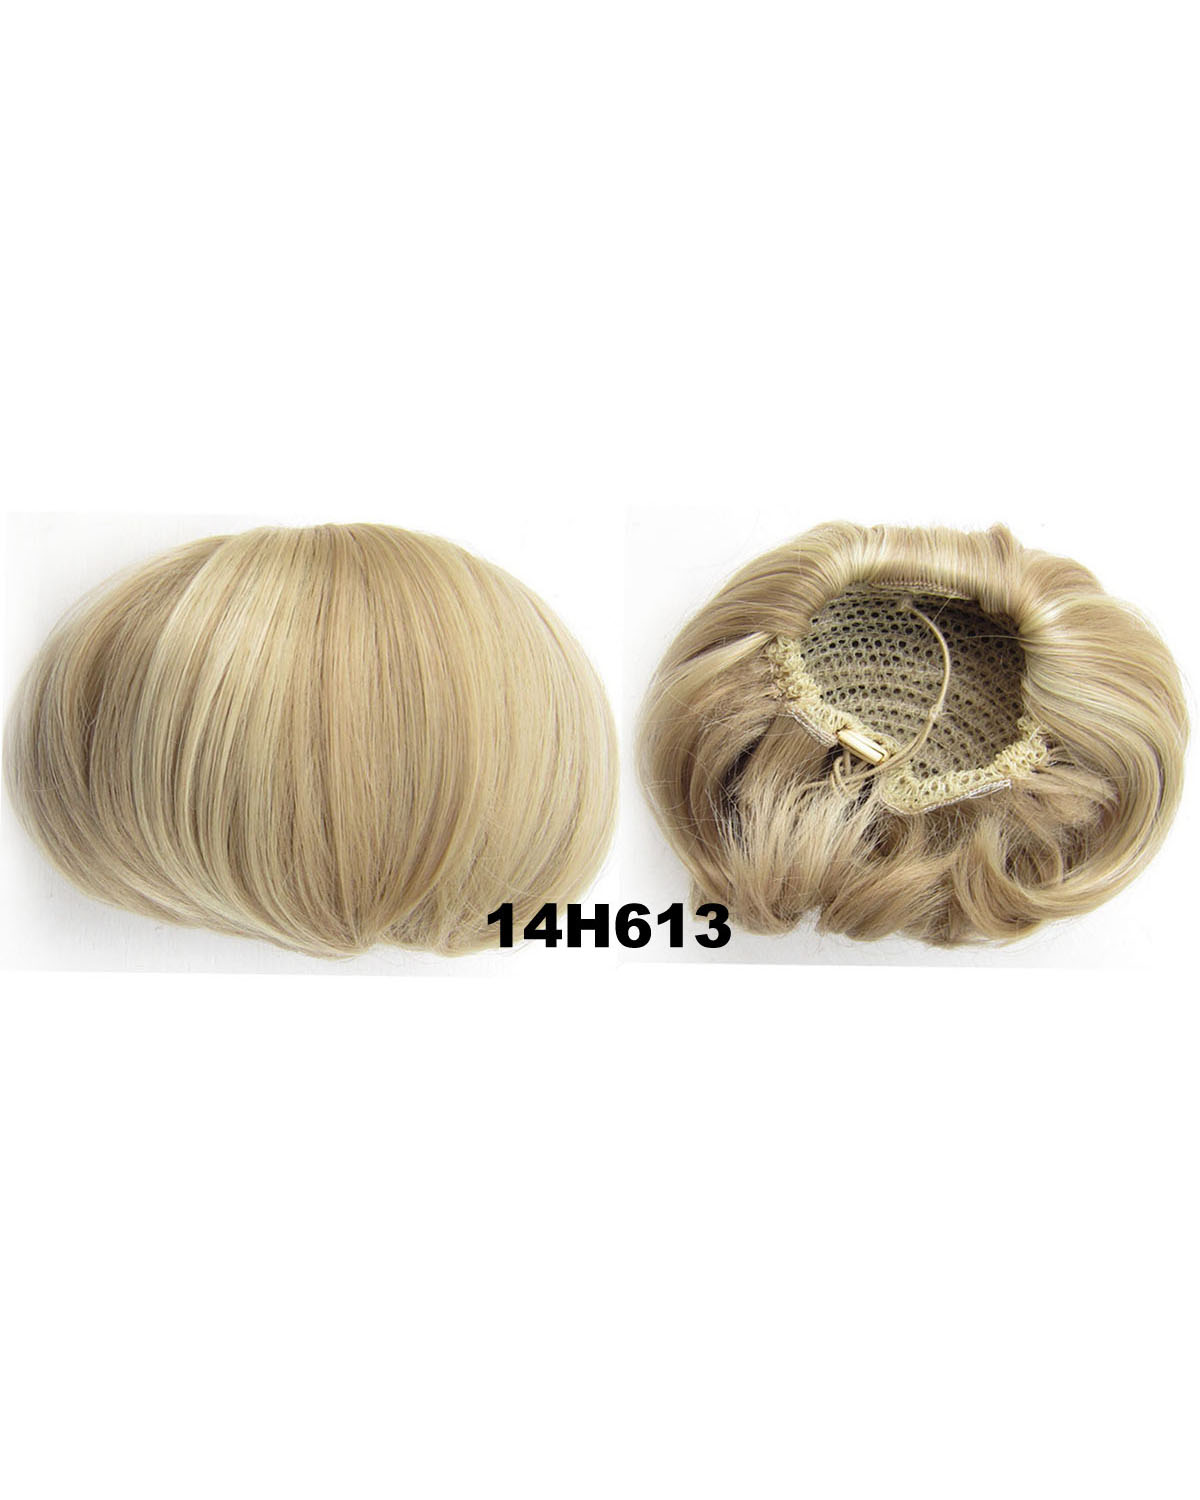 Ladies Exquisite Straight Short Hair Buns Drawstring Synthetic Hair Extension Bride Scrunchies  14H613